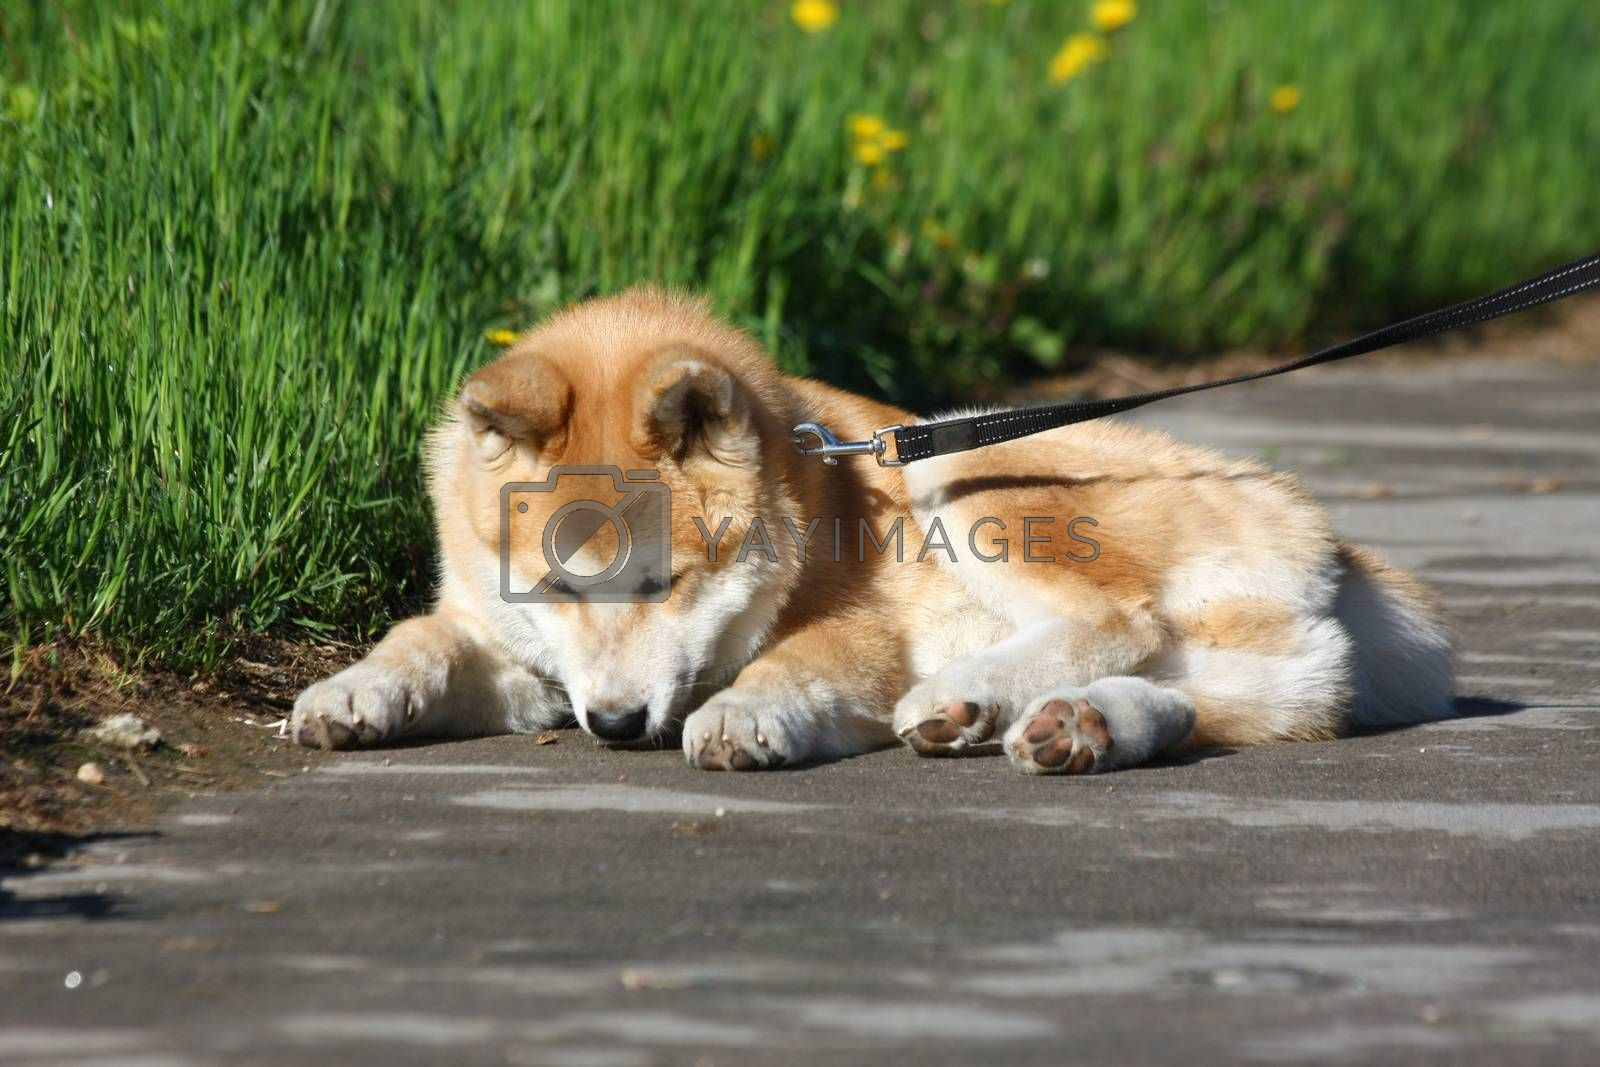 Lazy dog on the sidewalk by tdjoric